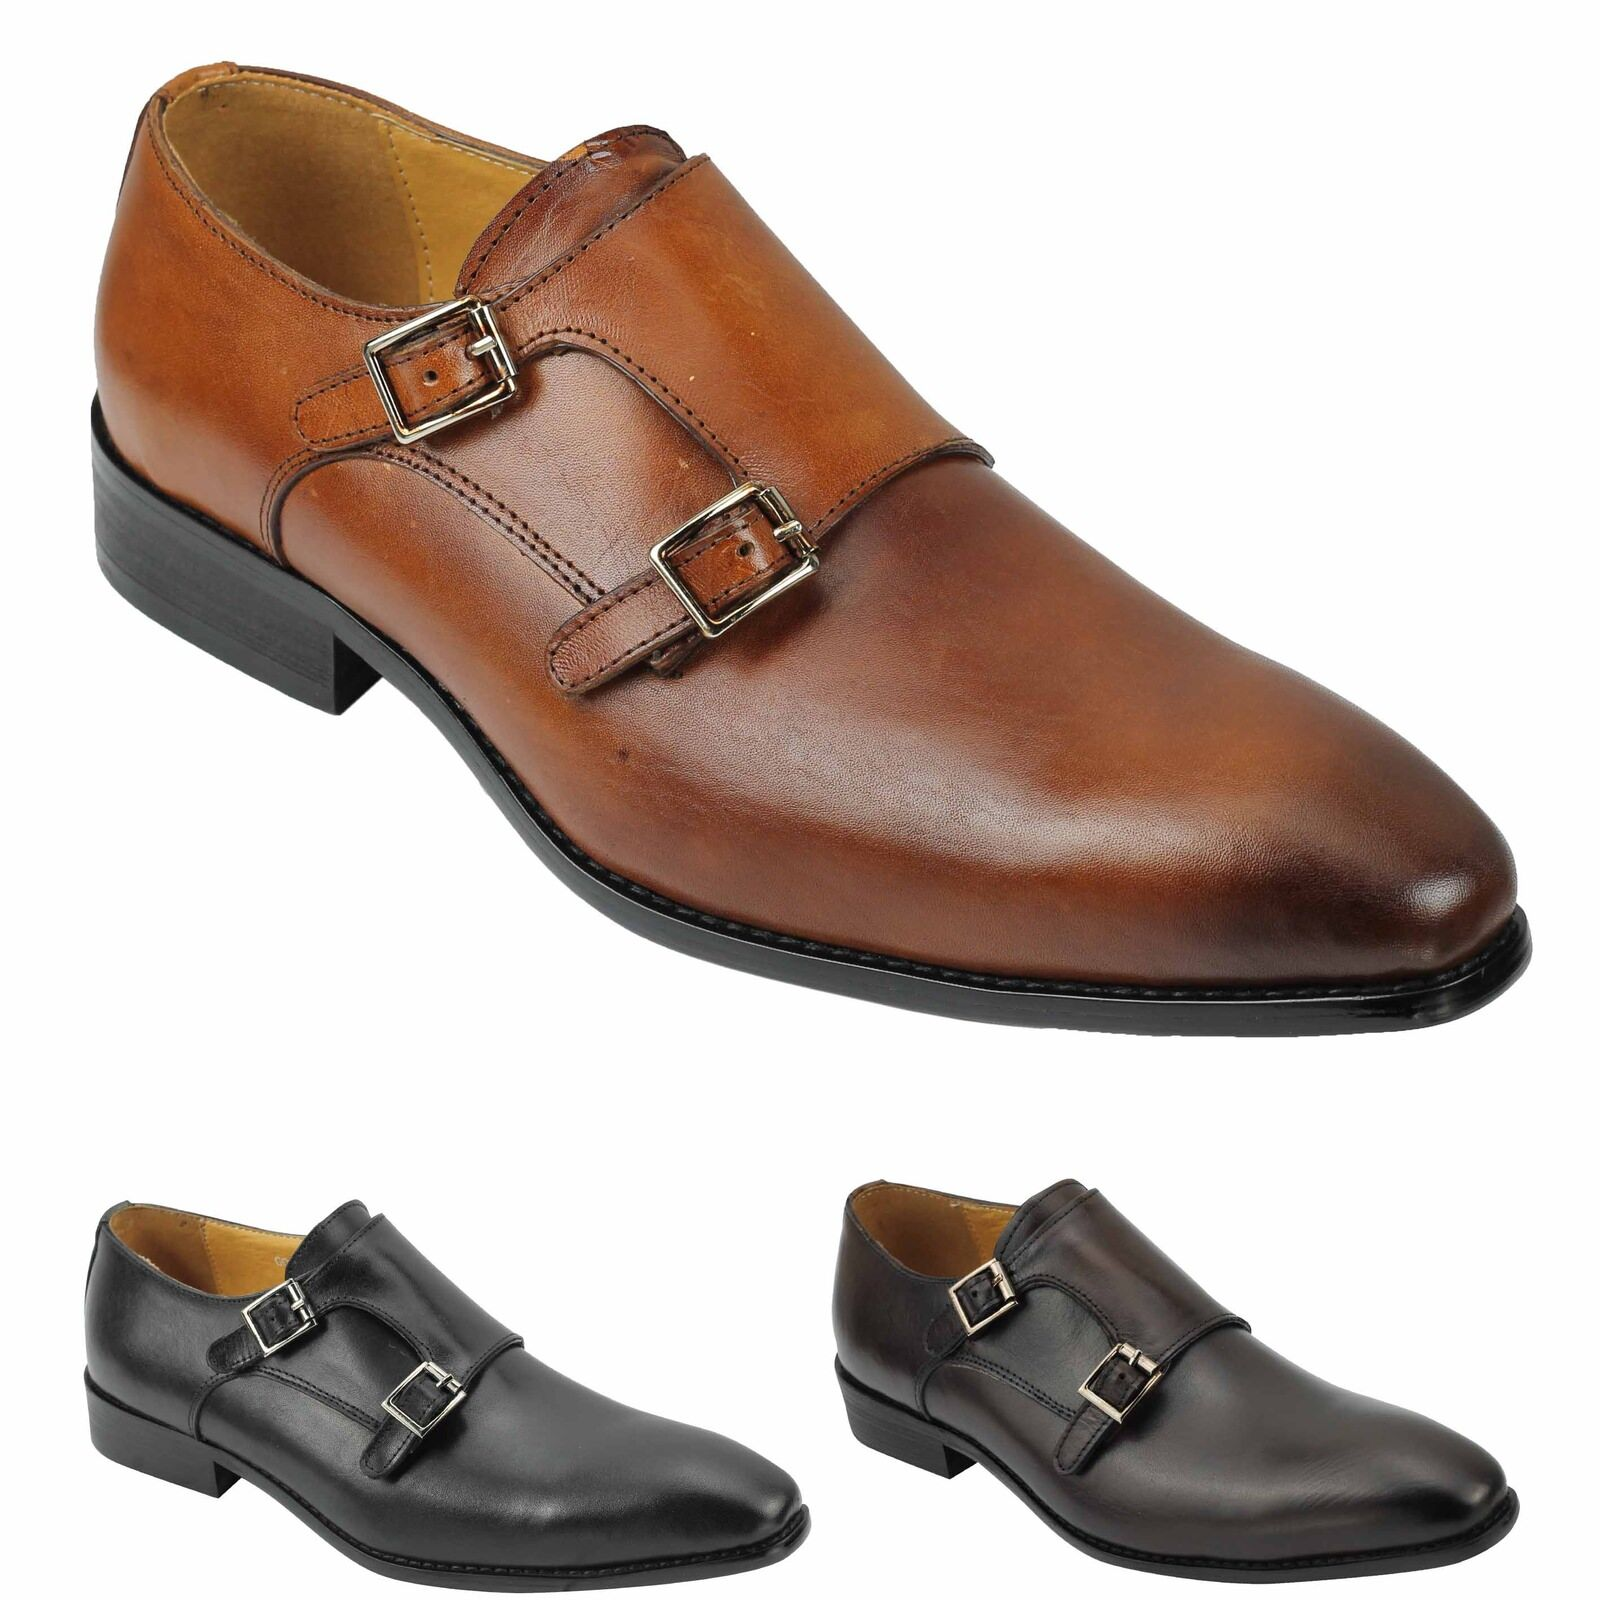 Mens New New Mens Polished Leather Black Brown Classic Monk Straps Vintage Formal Shoes 884161